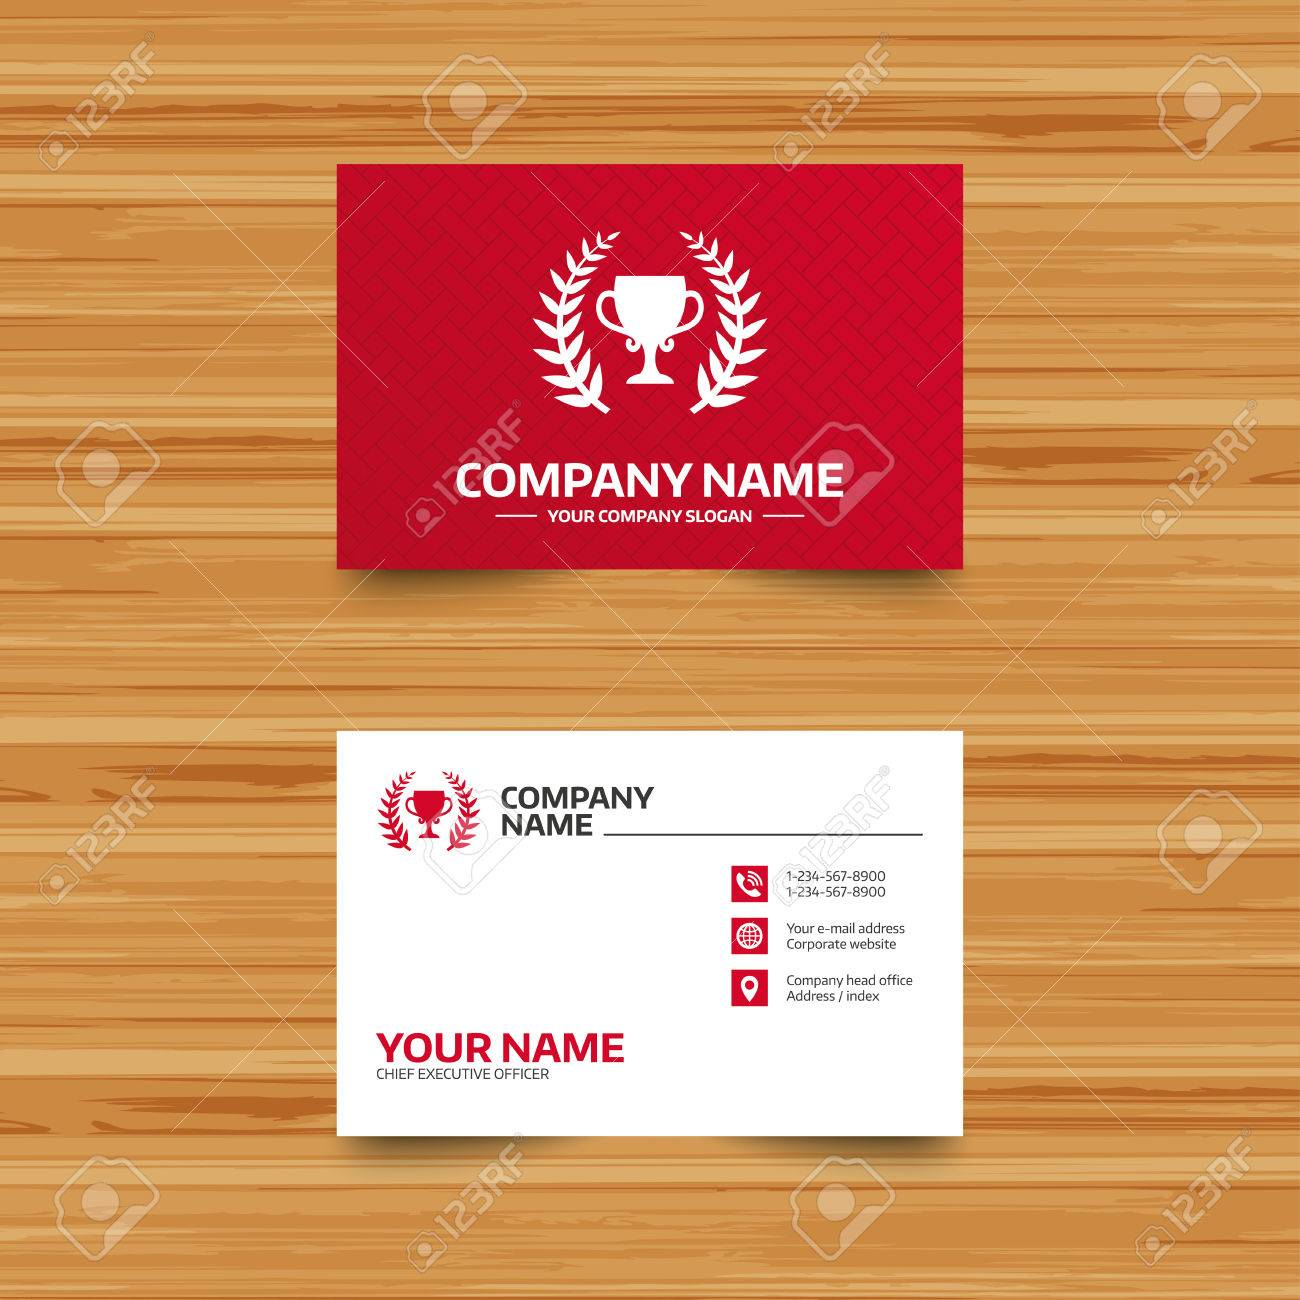 Business card template first place cup award sign icon prize business card template first place cup award sign icon prize for winner symbol reheart Choice Image